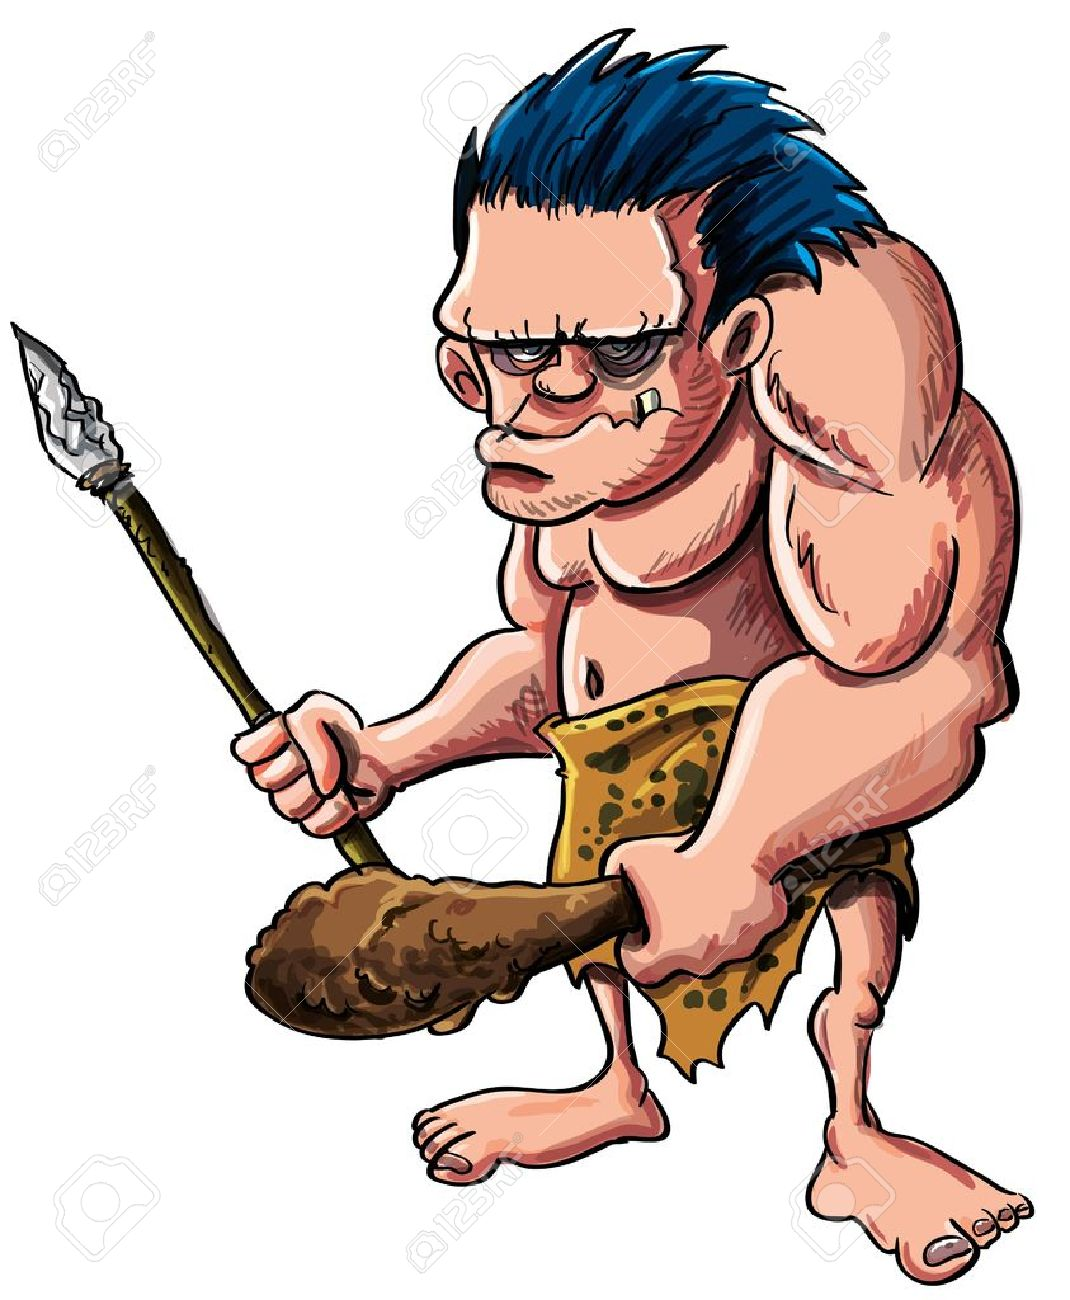 Cartoon illustration of a stooped muscular caveman or troglodyte in an animal skin loincloth brandishing a wooden cudgel and stone tipped spear isolated on white Stock Vector - 18169209